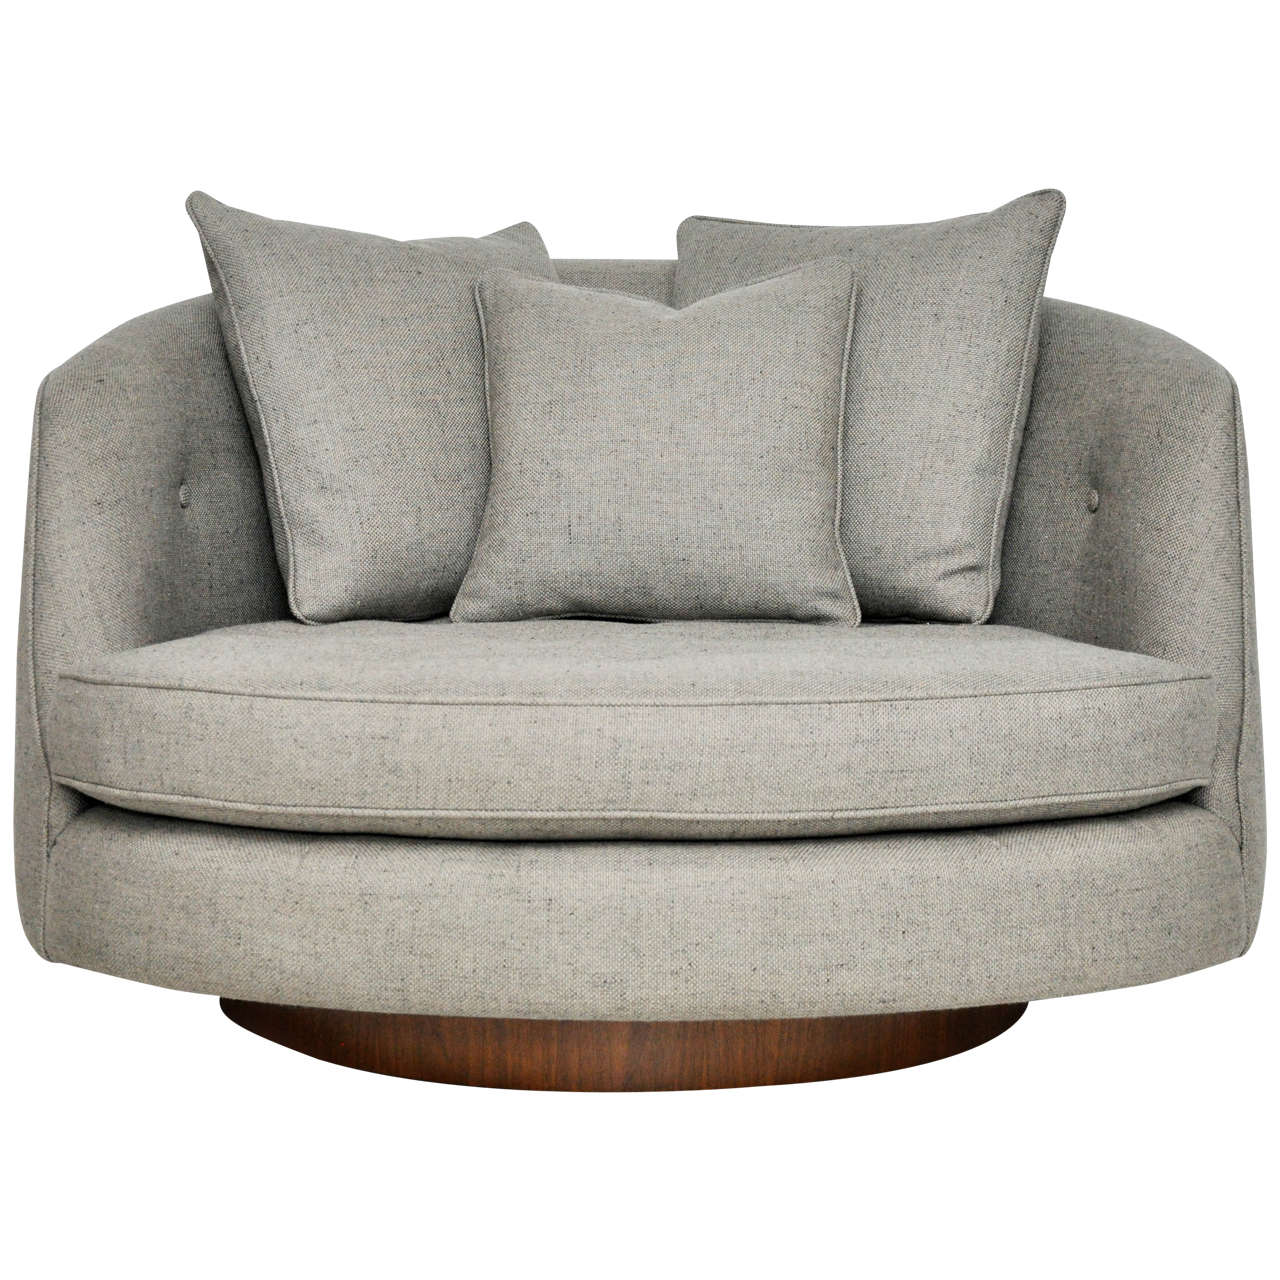 Large Swivel Chair Chairs Model